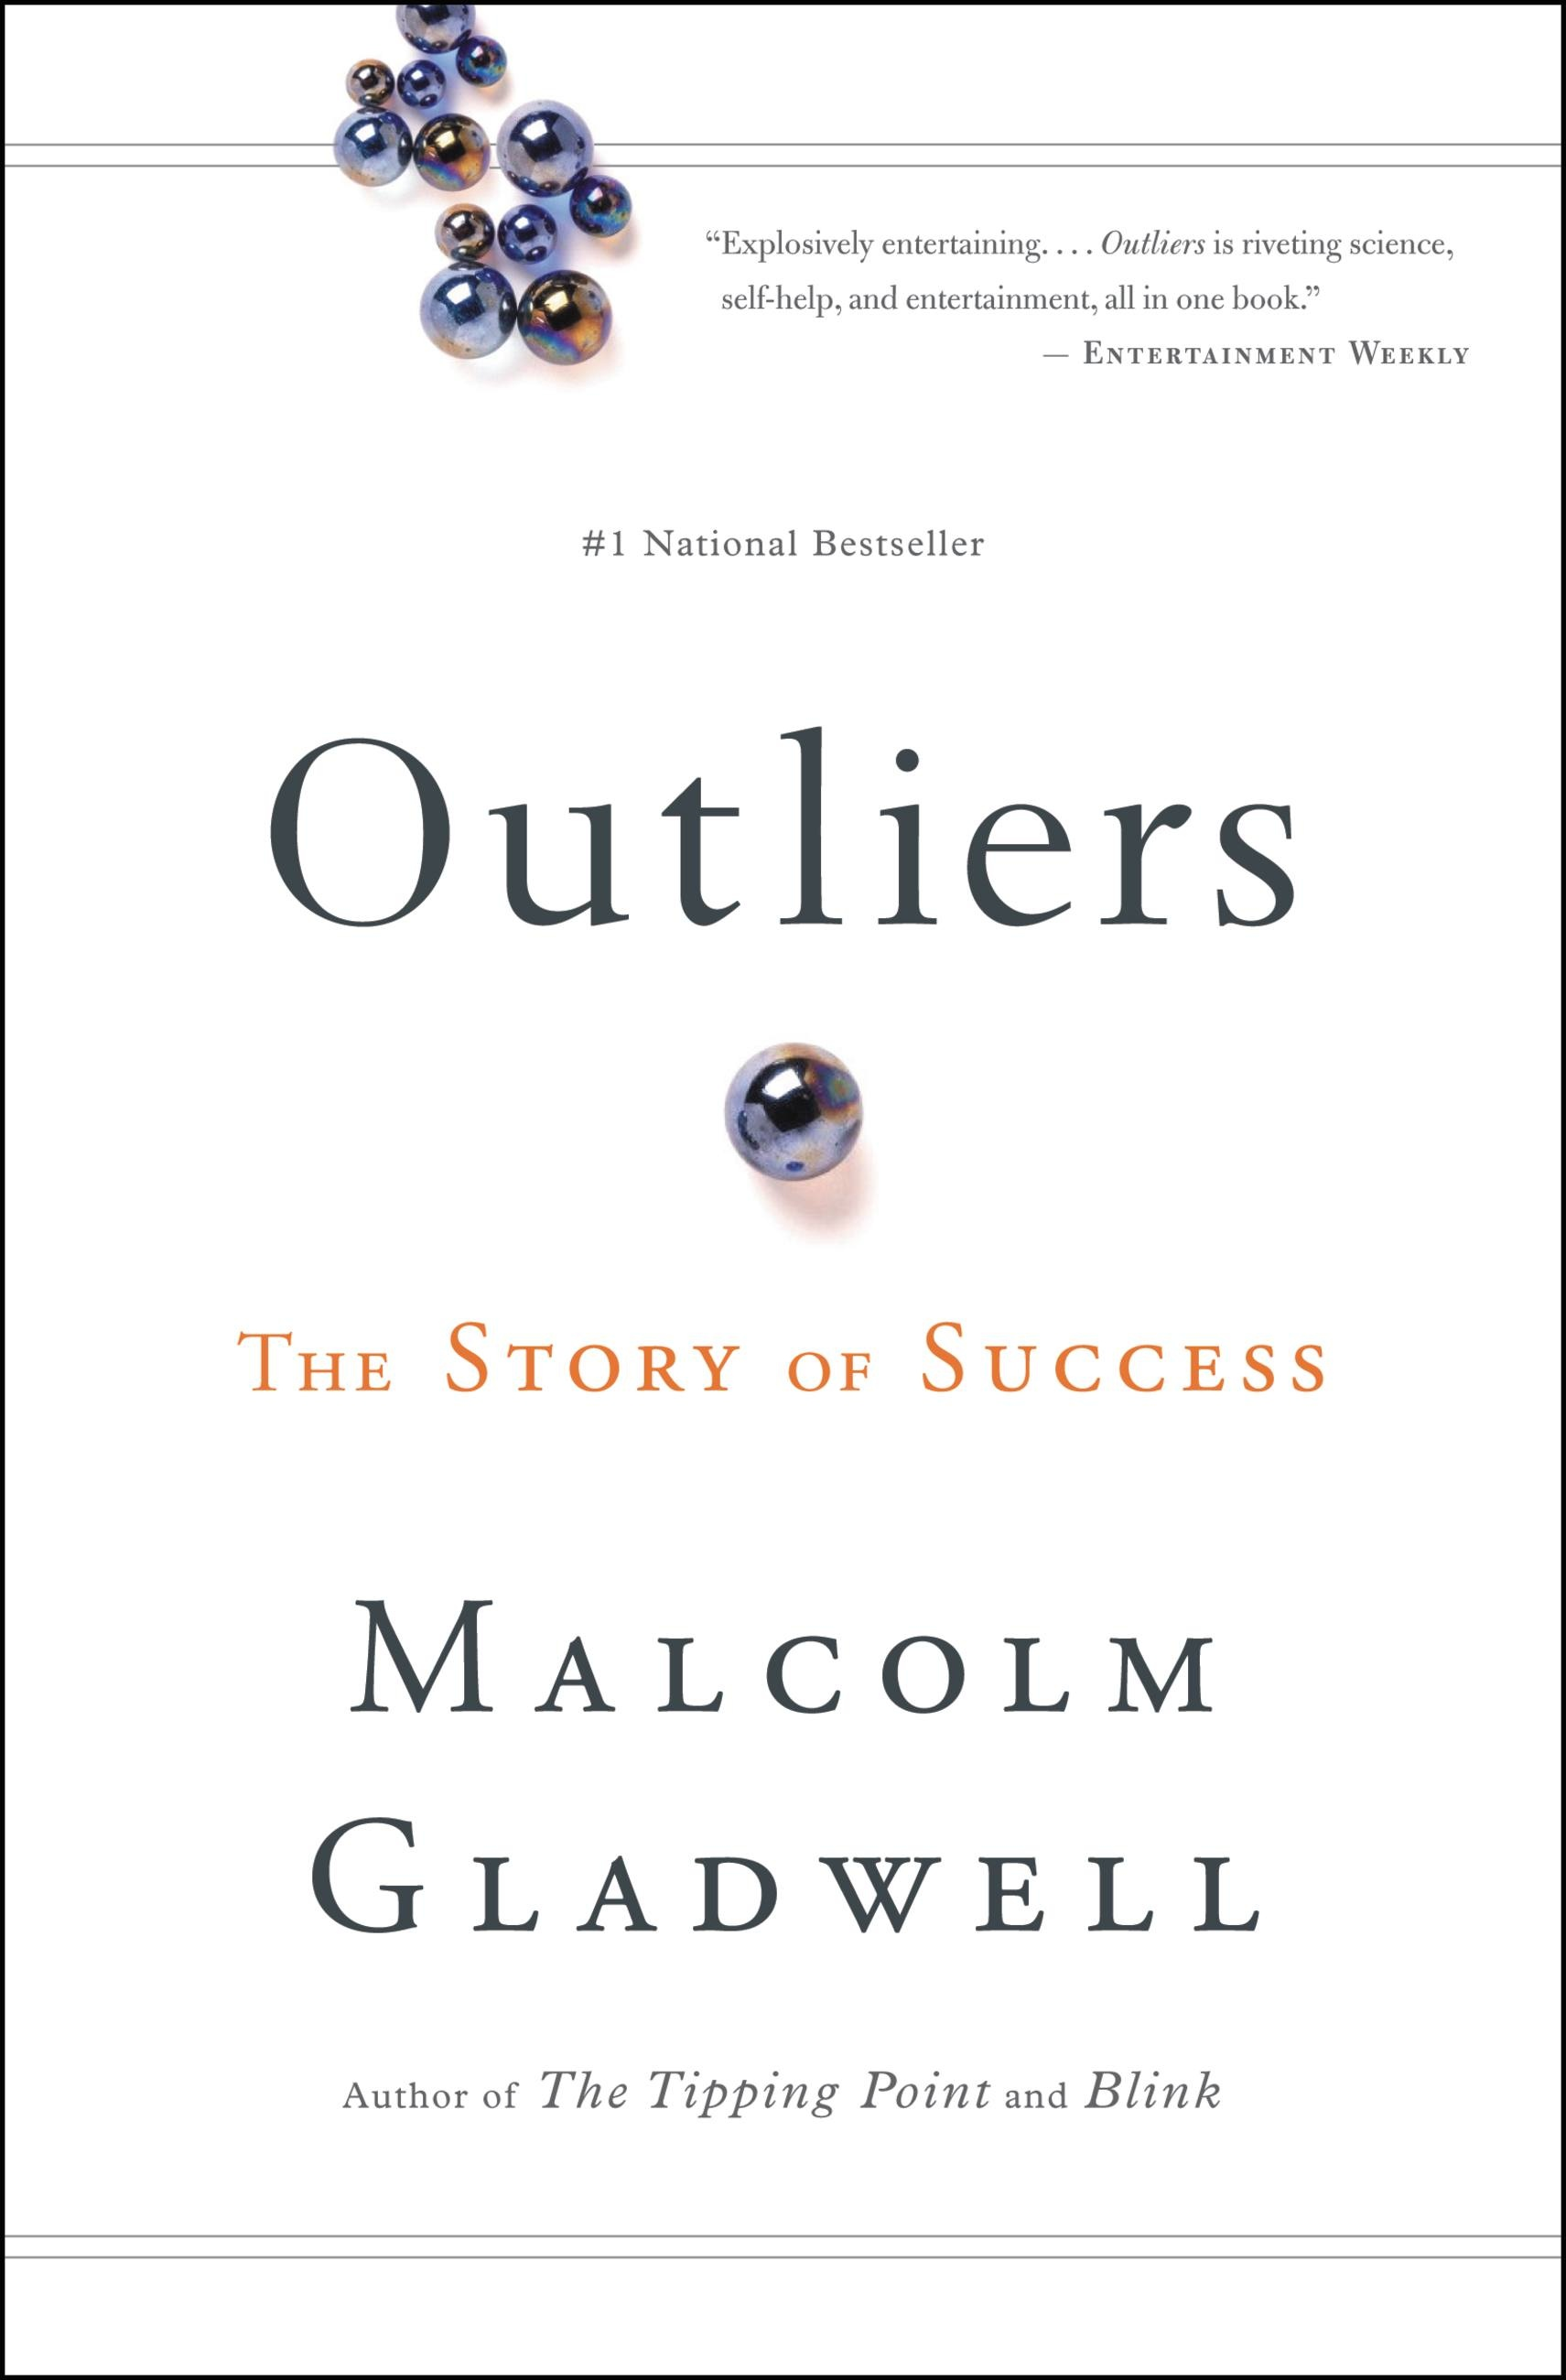 Outliers by malcolm gladwell hachette book group fandeluxe Gallery